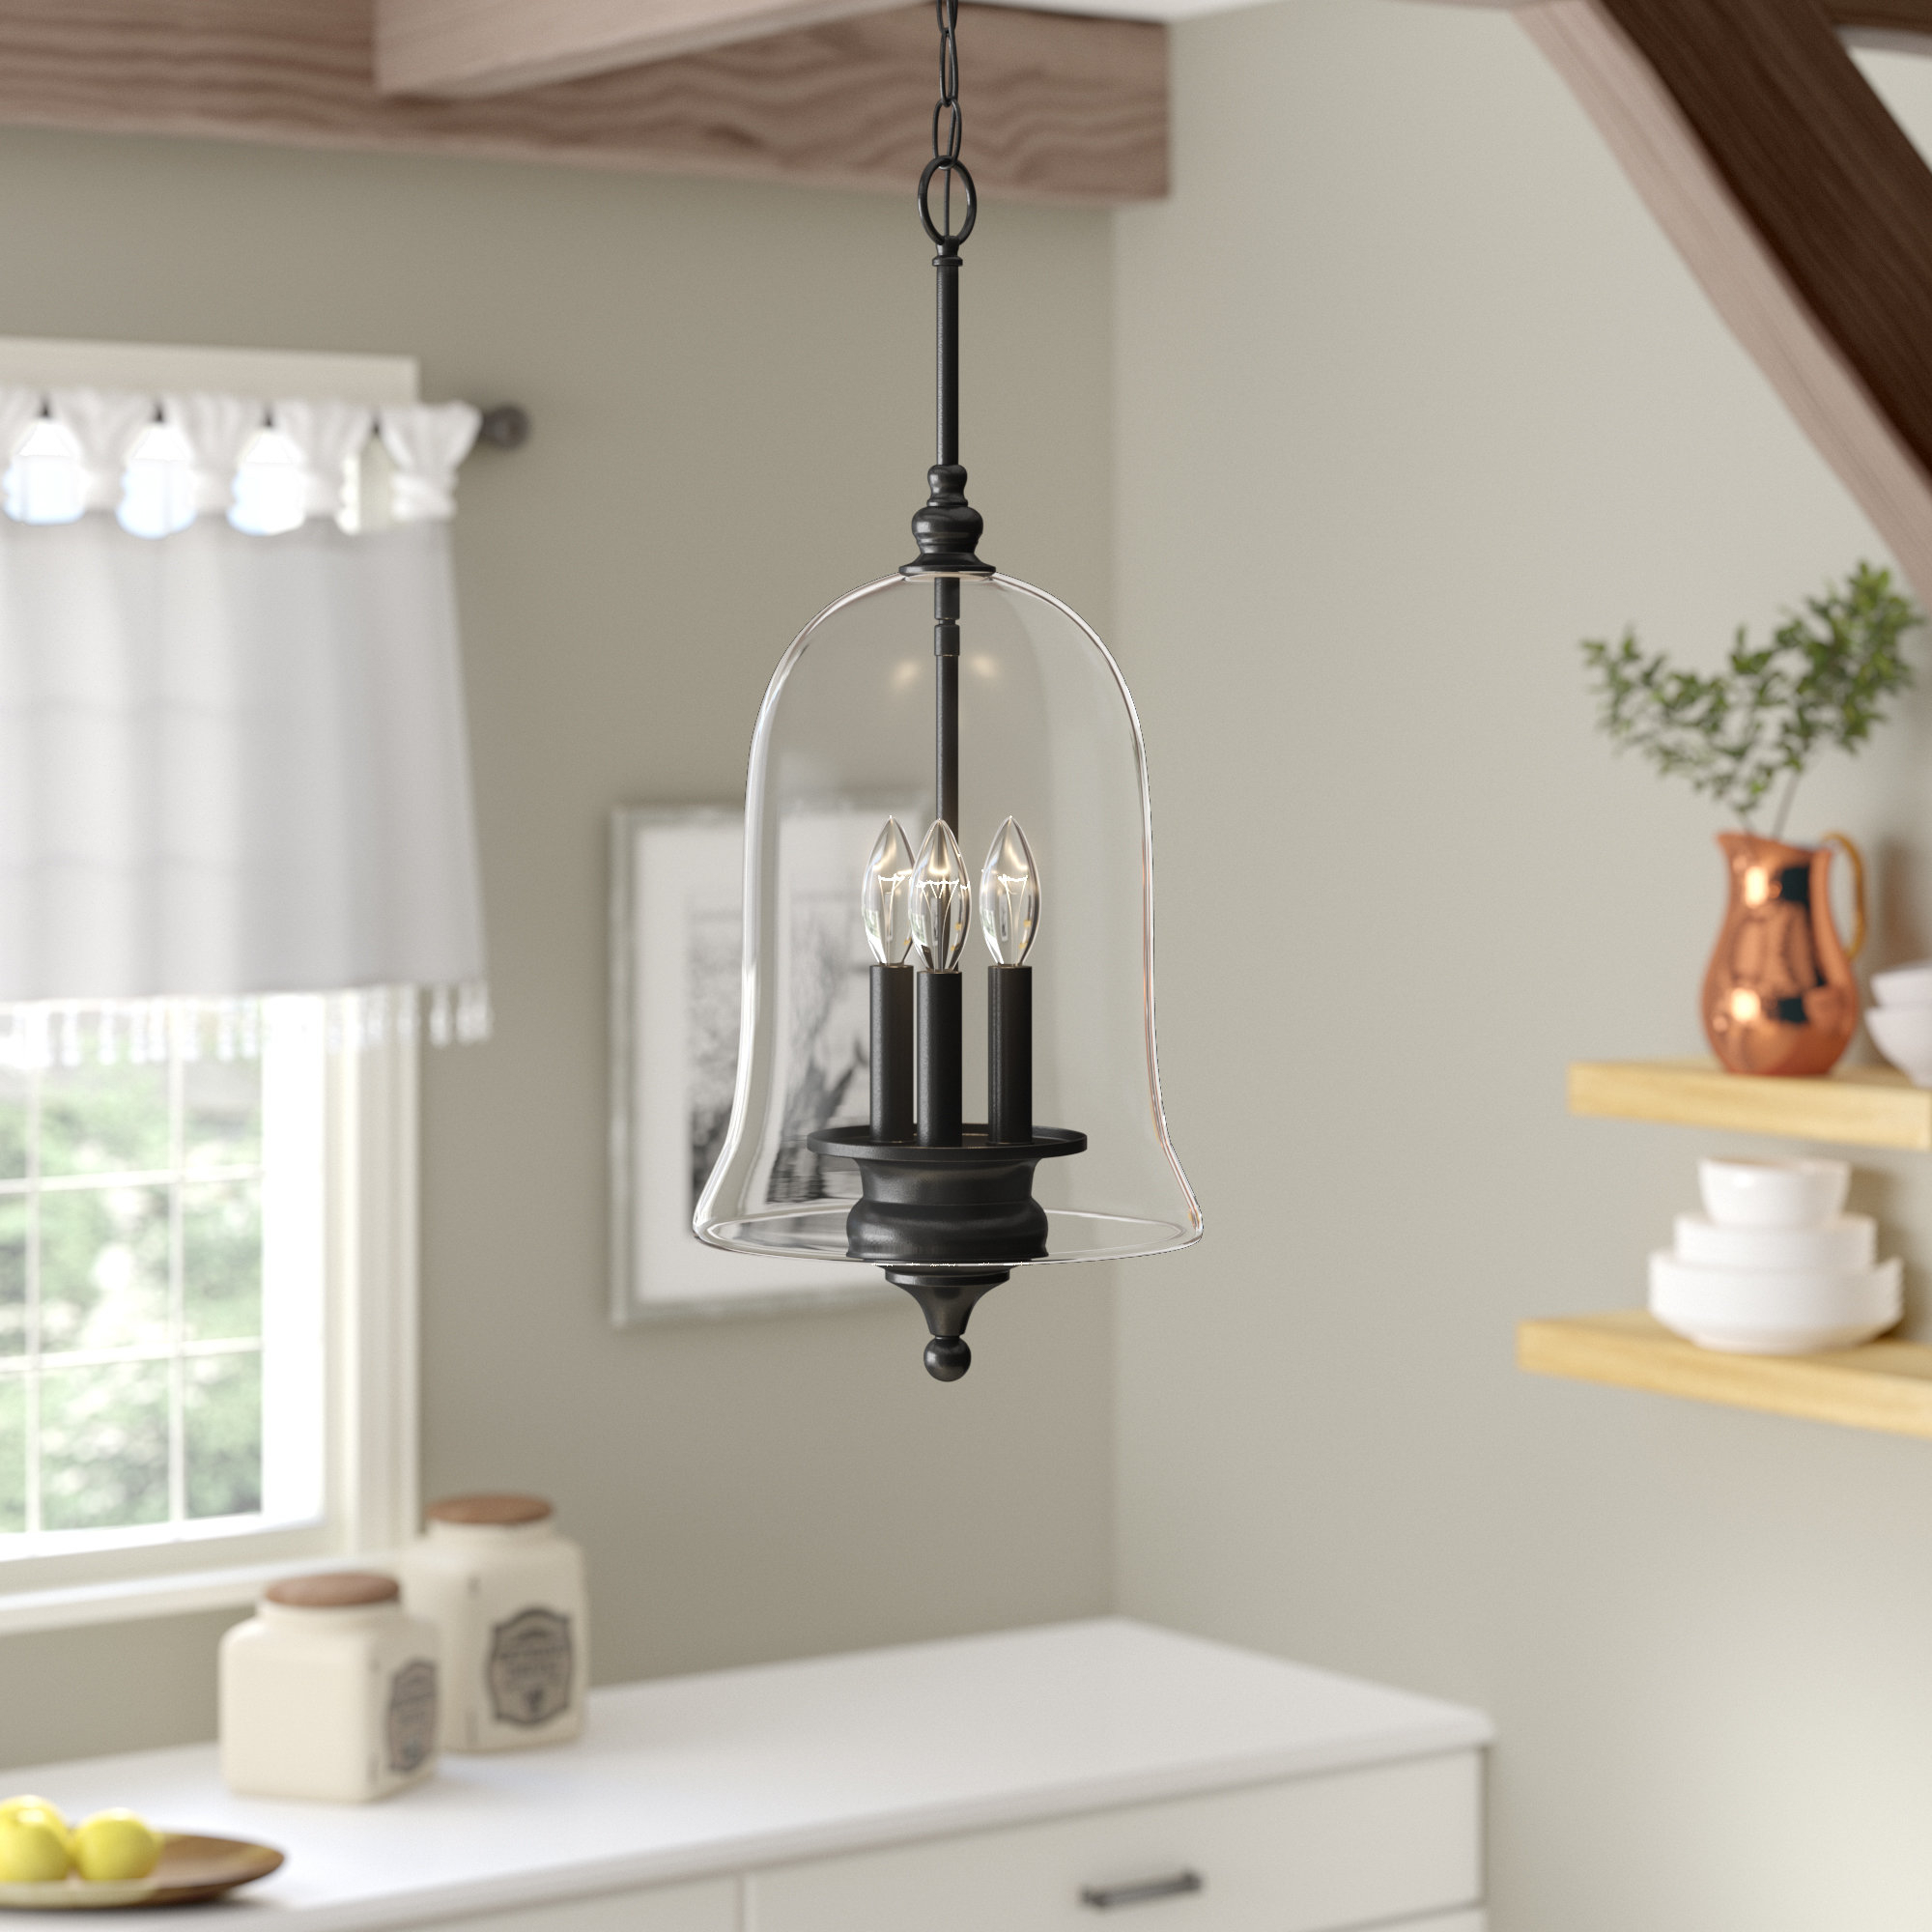 Gracie Oaks Youngberg 3 Light Single Bell Pendant & Reviews Regarding Most Up To Date Dirksen 3 Light Single Cylinder Chandeliers (View 20 of 25)